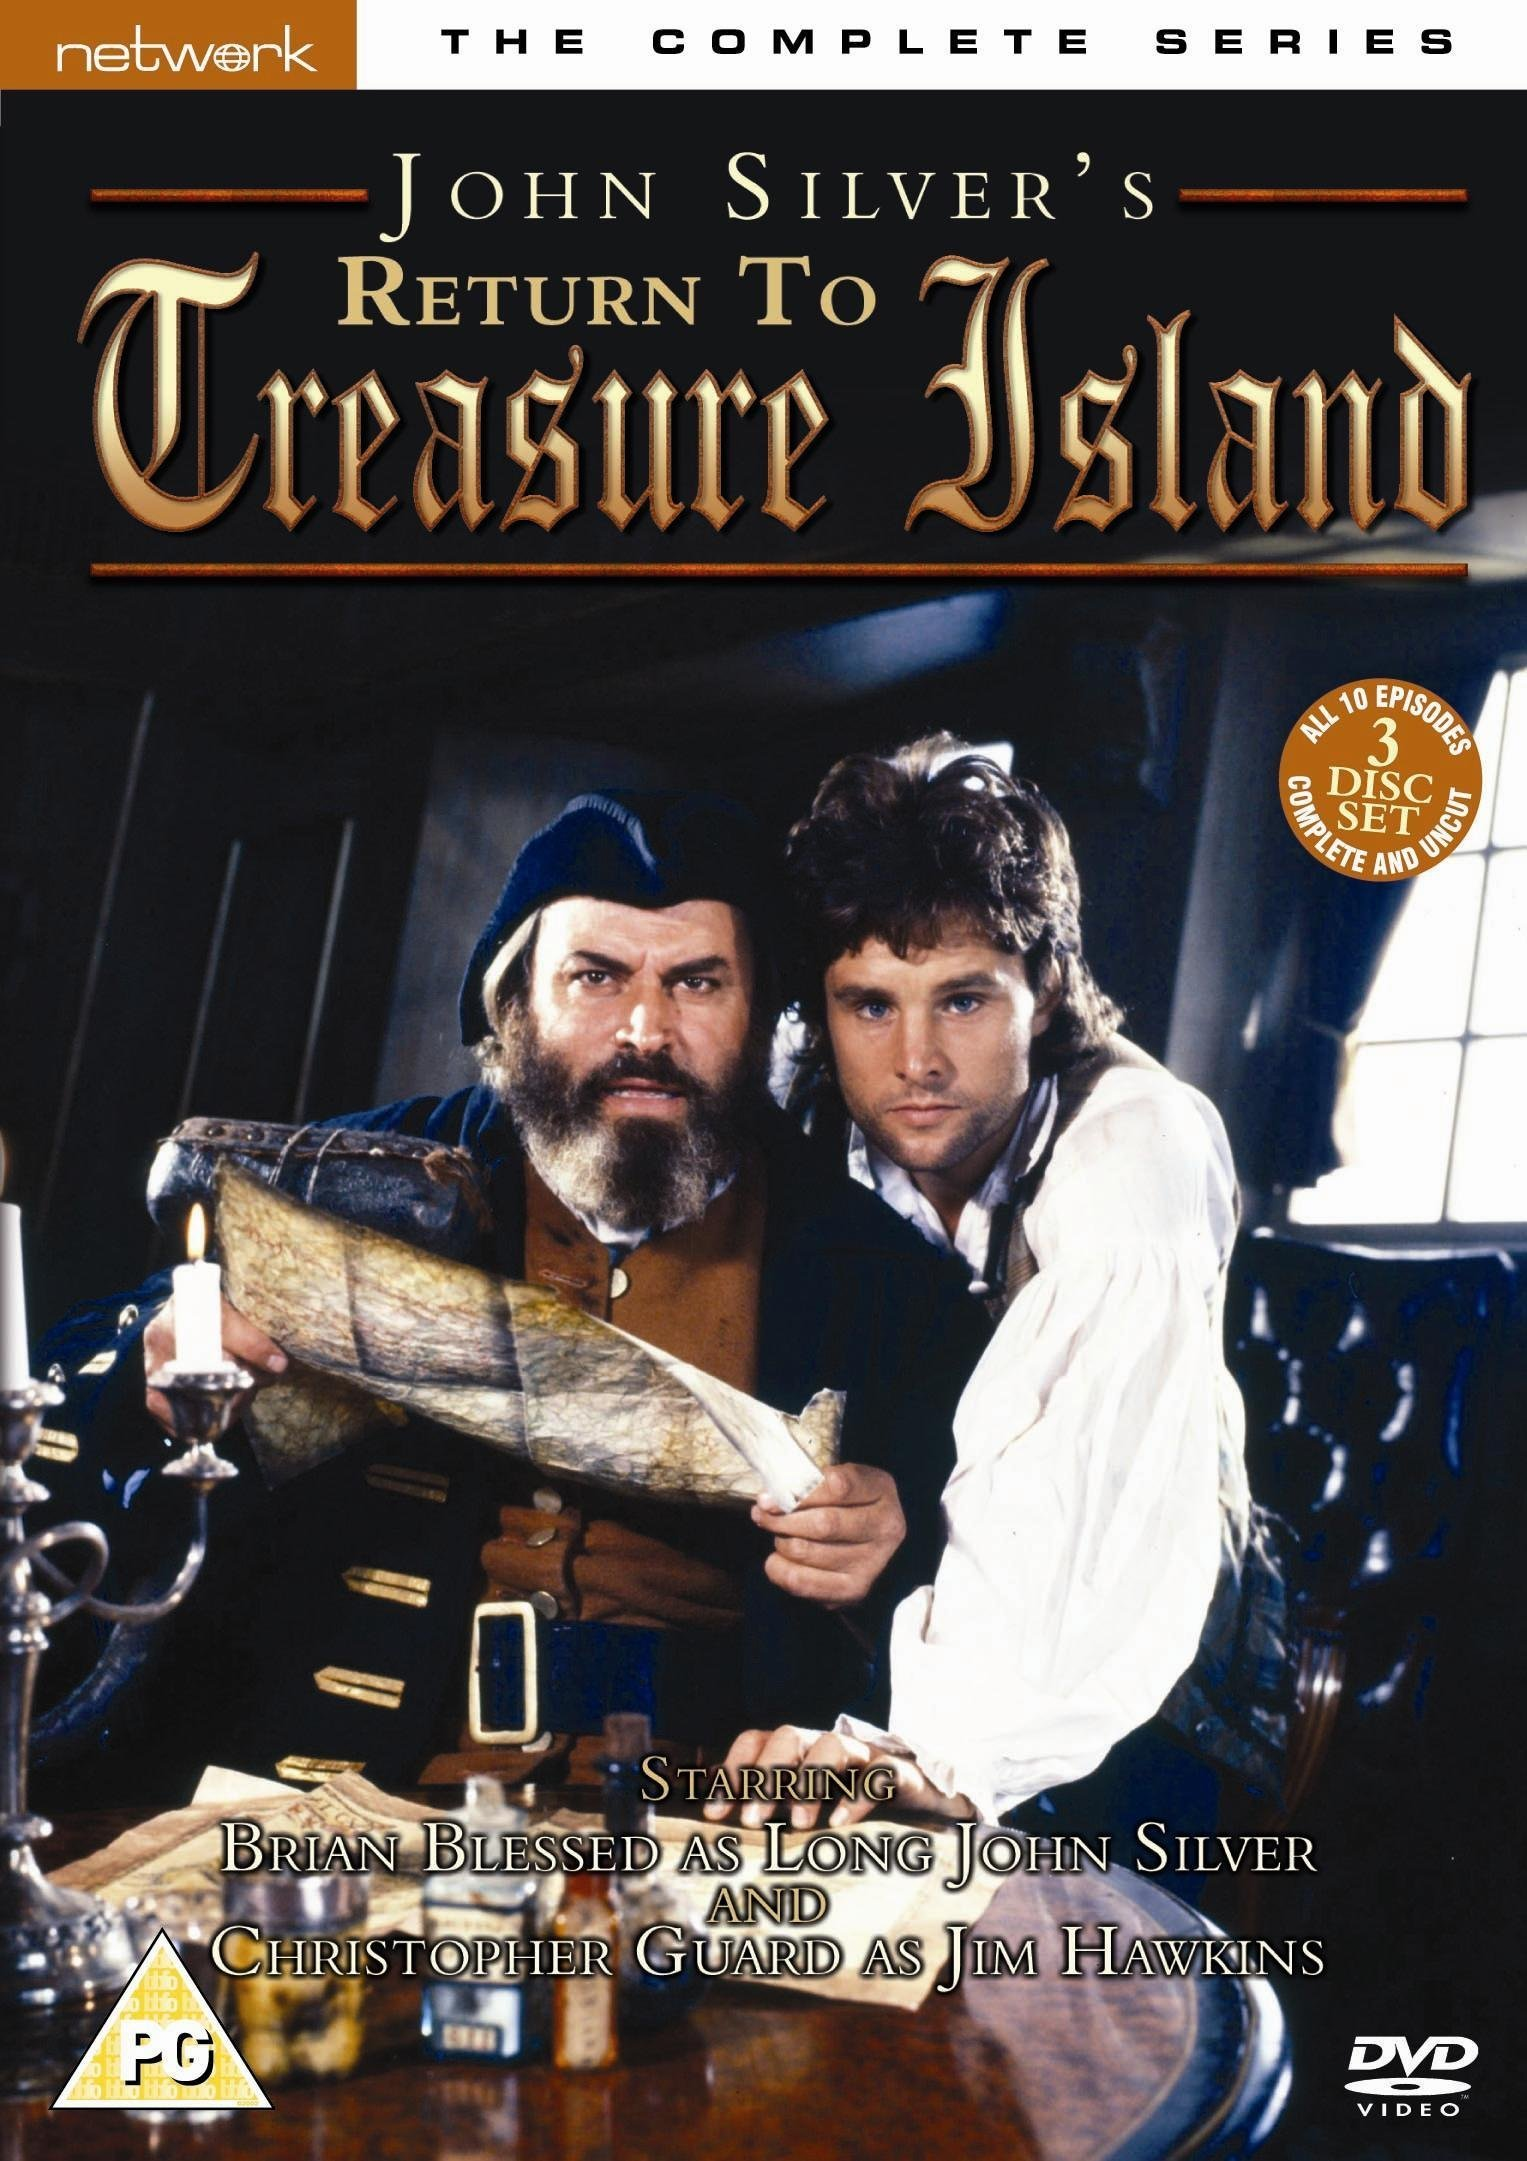 Return To Treasure Island - The Complete Series [DVD] [1986]